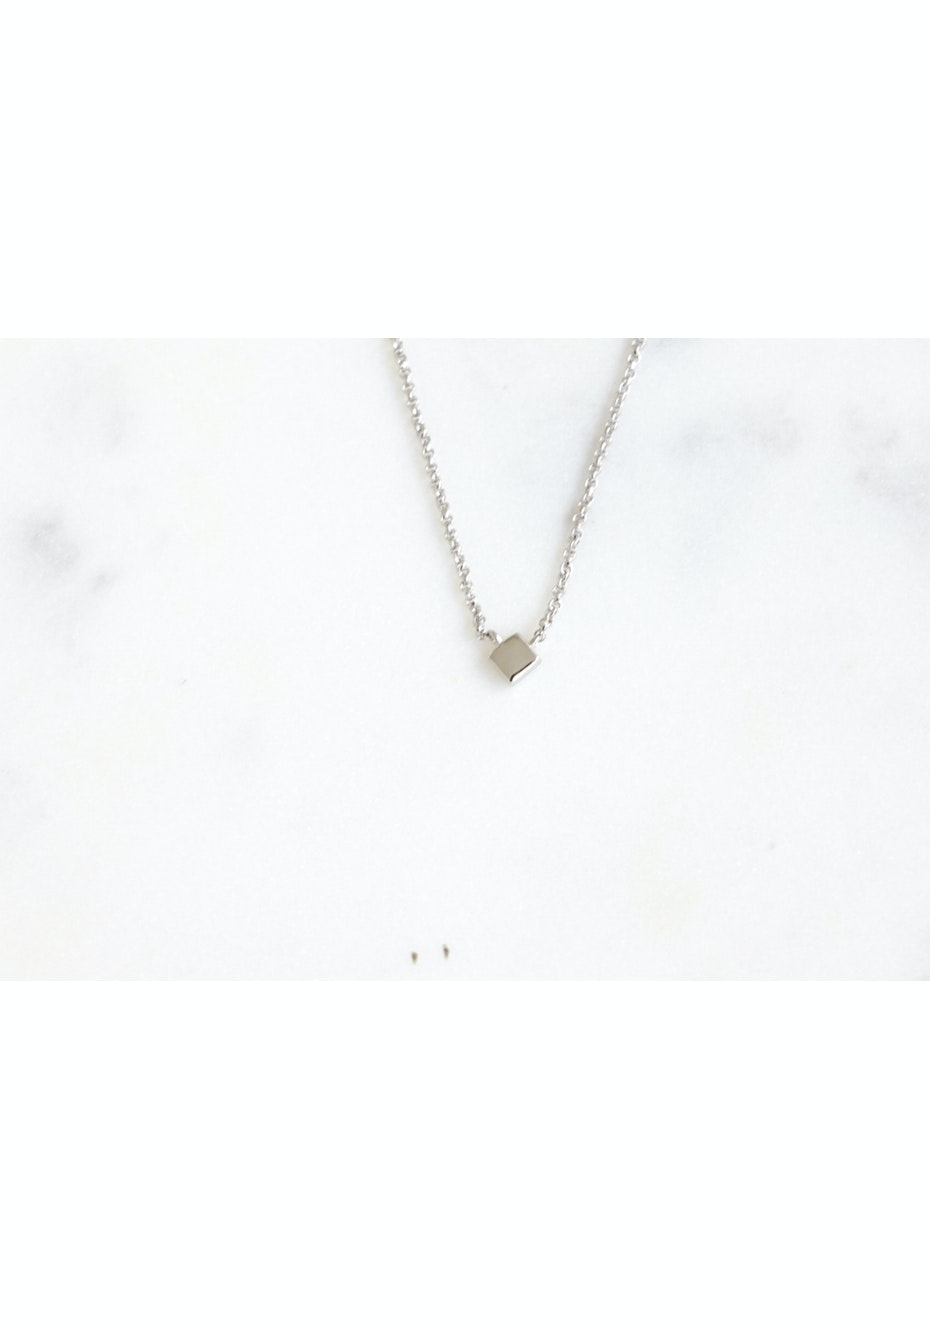 Sqaure Necklace - 925 Silver